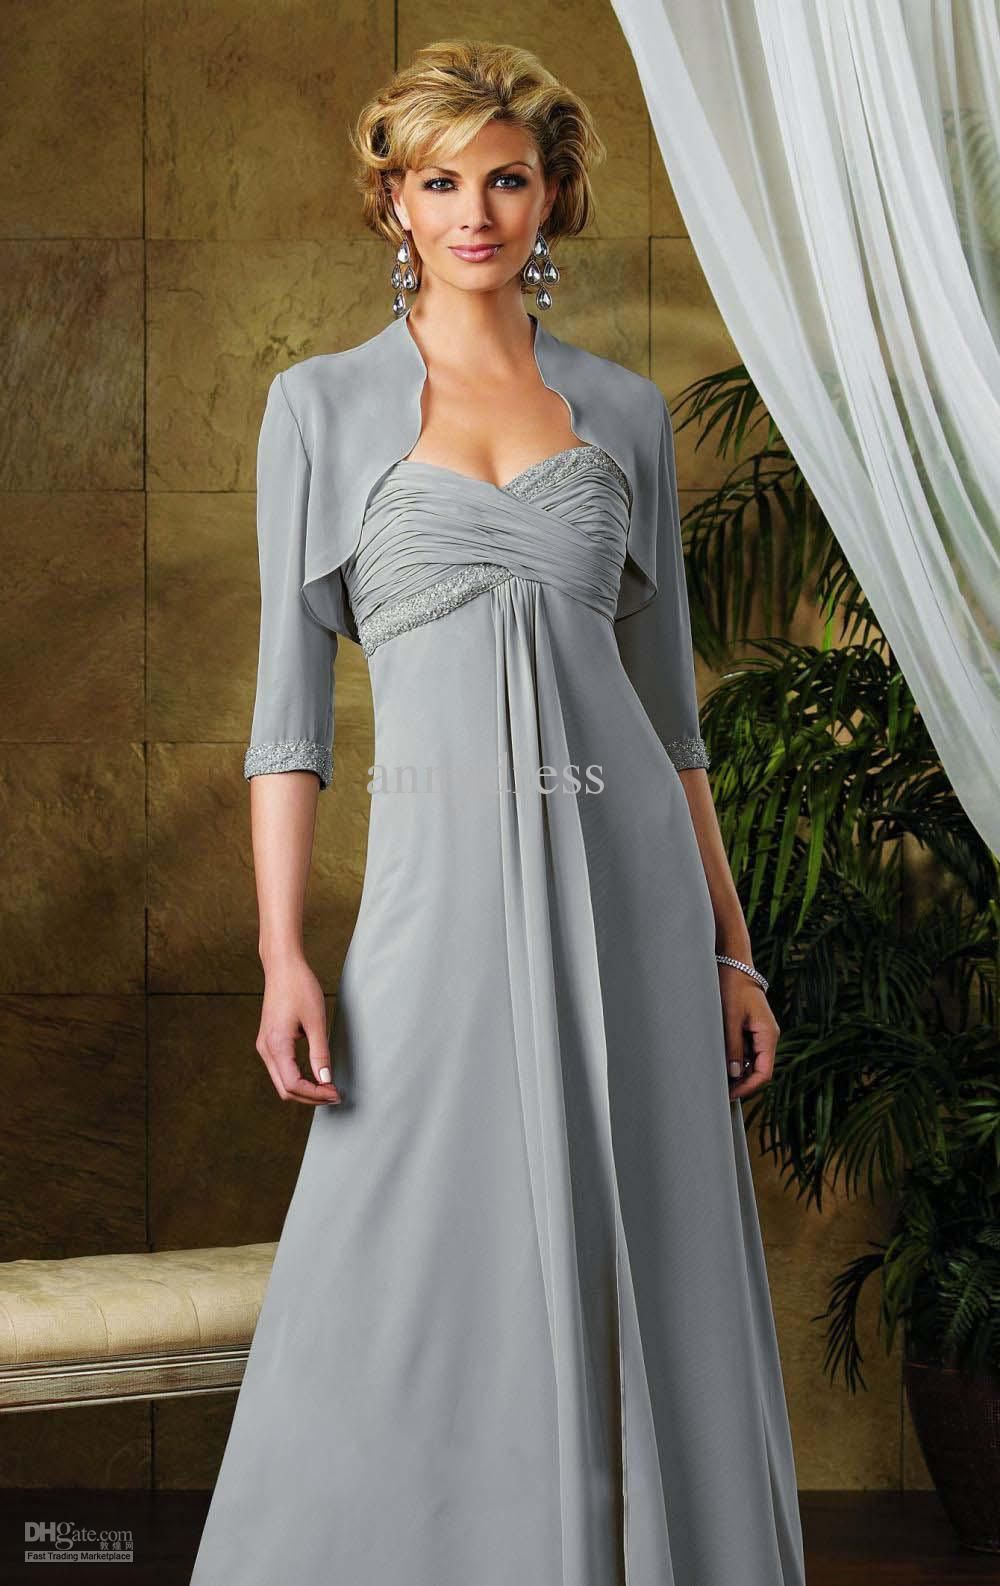 d2b74c47b7 Wholesale A-line Sweetheart Ruched and Beaded Bodice Floor-length Chiffon  Mother of Bride Dress Evening Dress